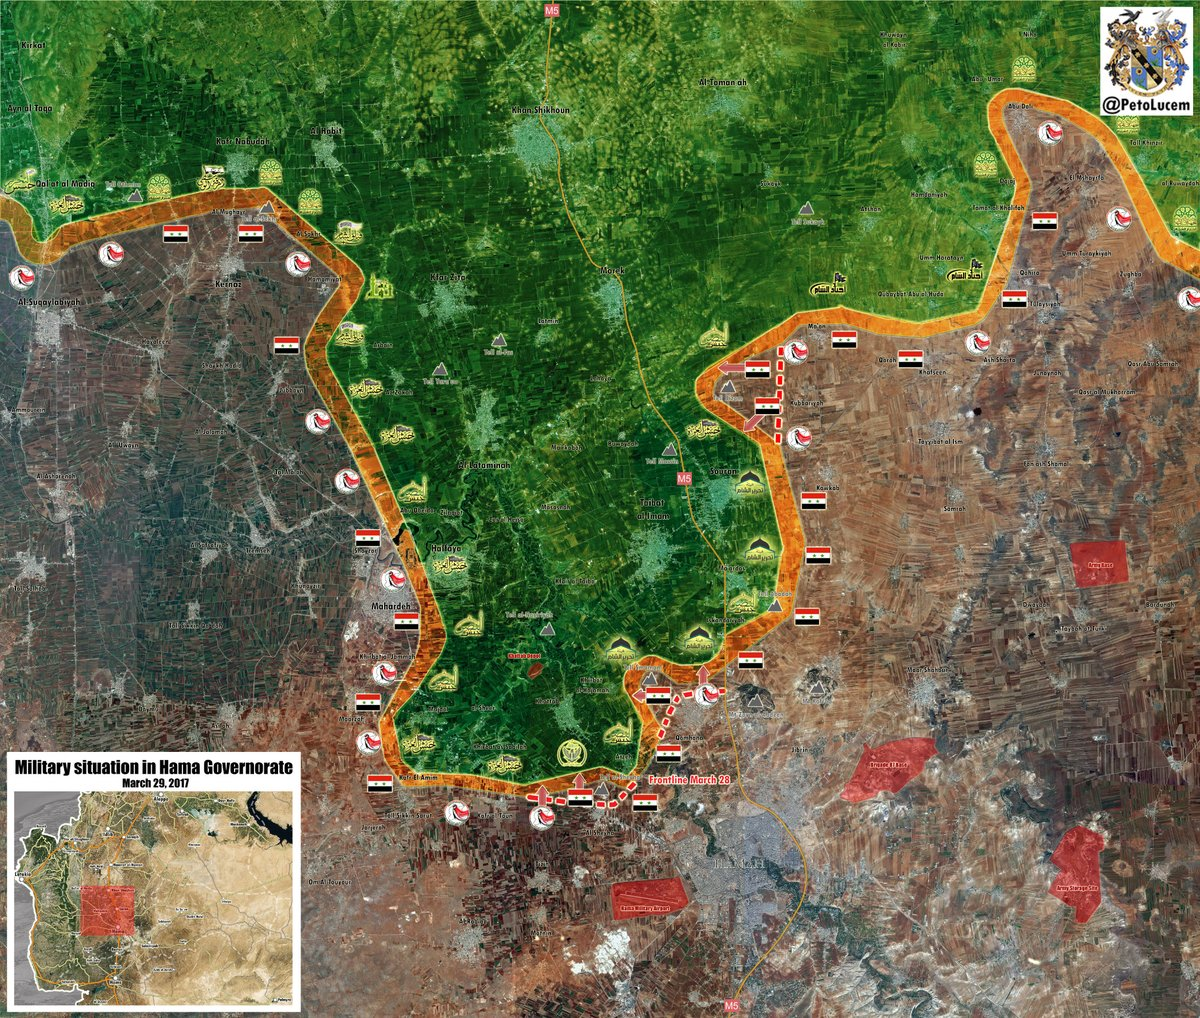 Heavy Clashes Between Syrian Army And HTS-led Forces Ongoing In Northern Hama (Video, Map)